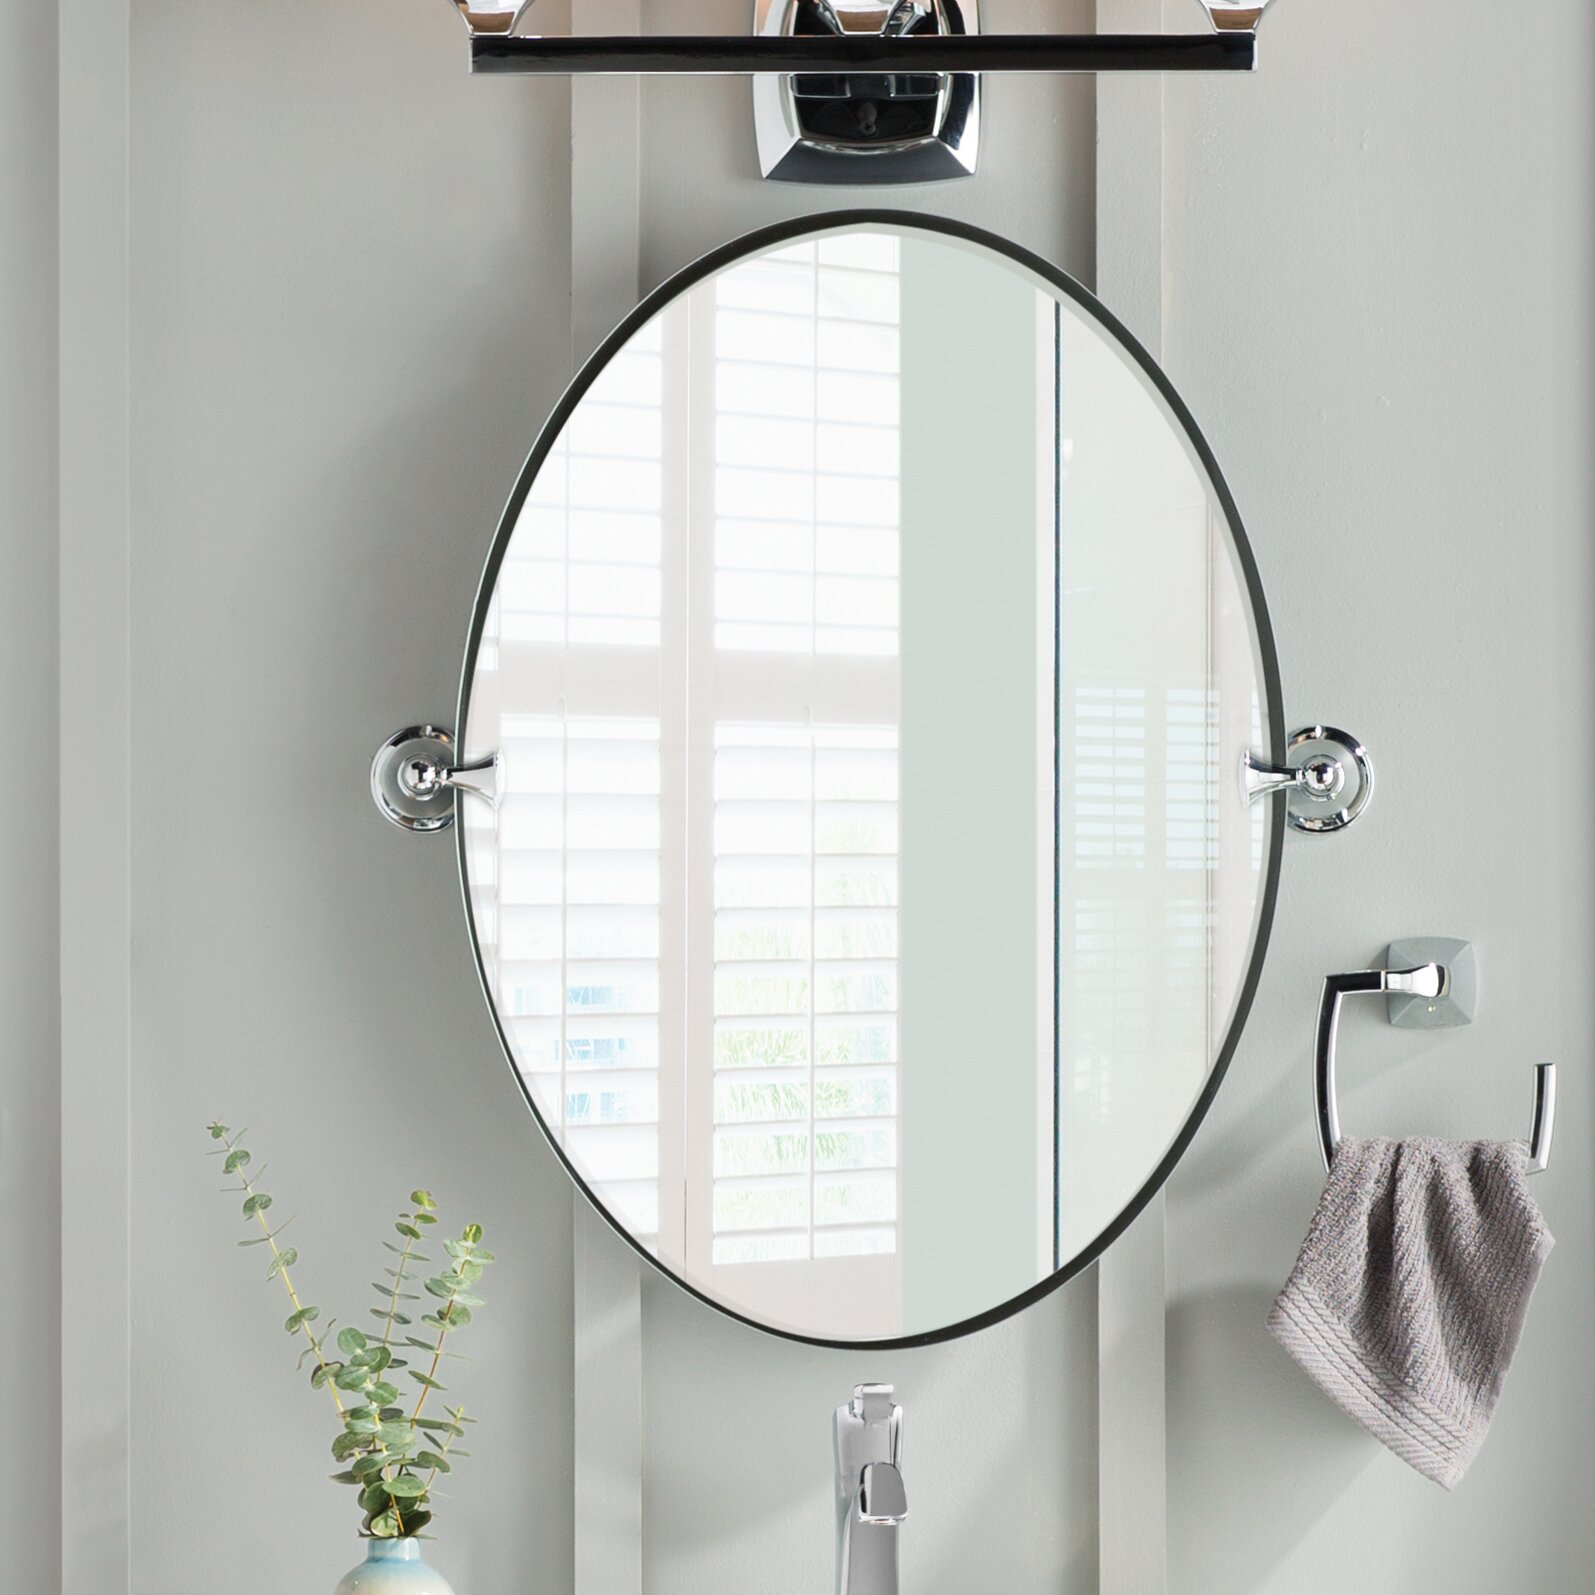 Bathroom Tilt Mirrors Moen Glenshire Tilting Wall Mirror Reviews Wayfair